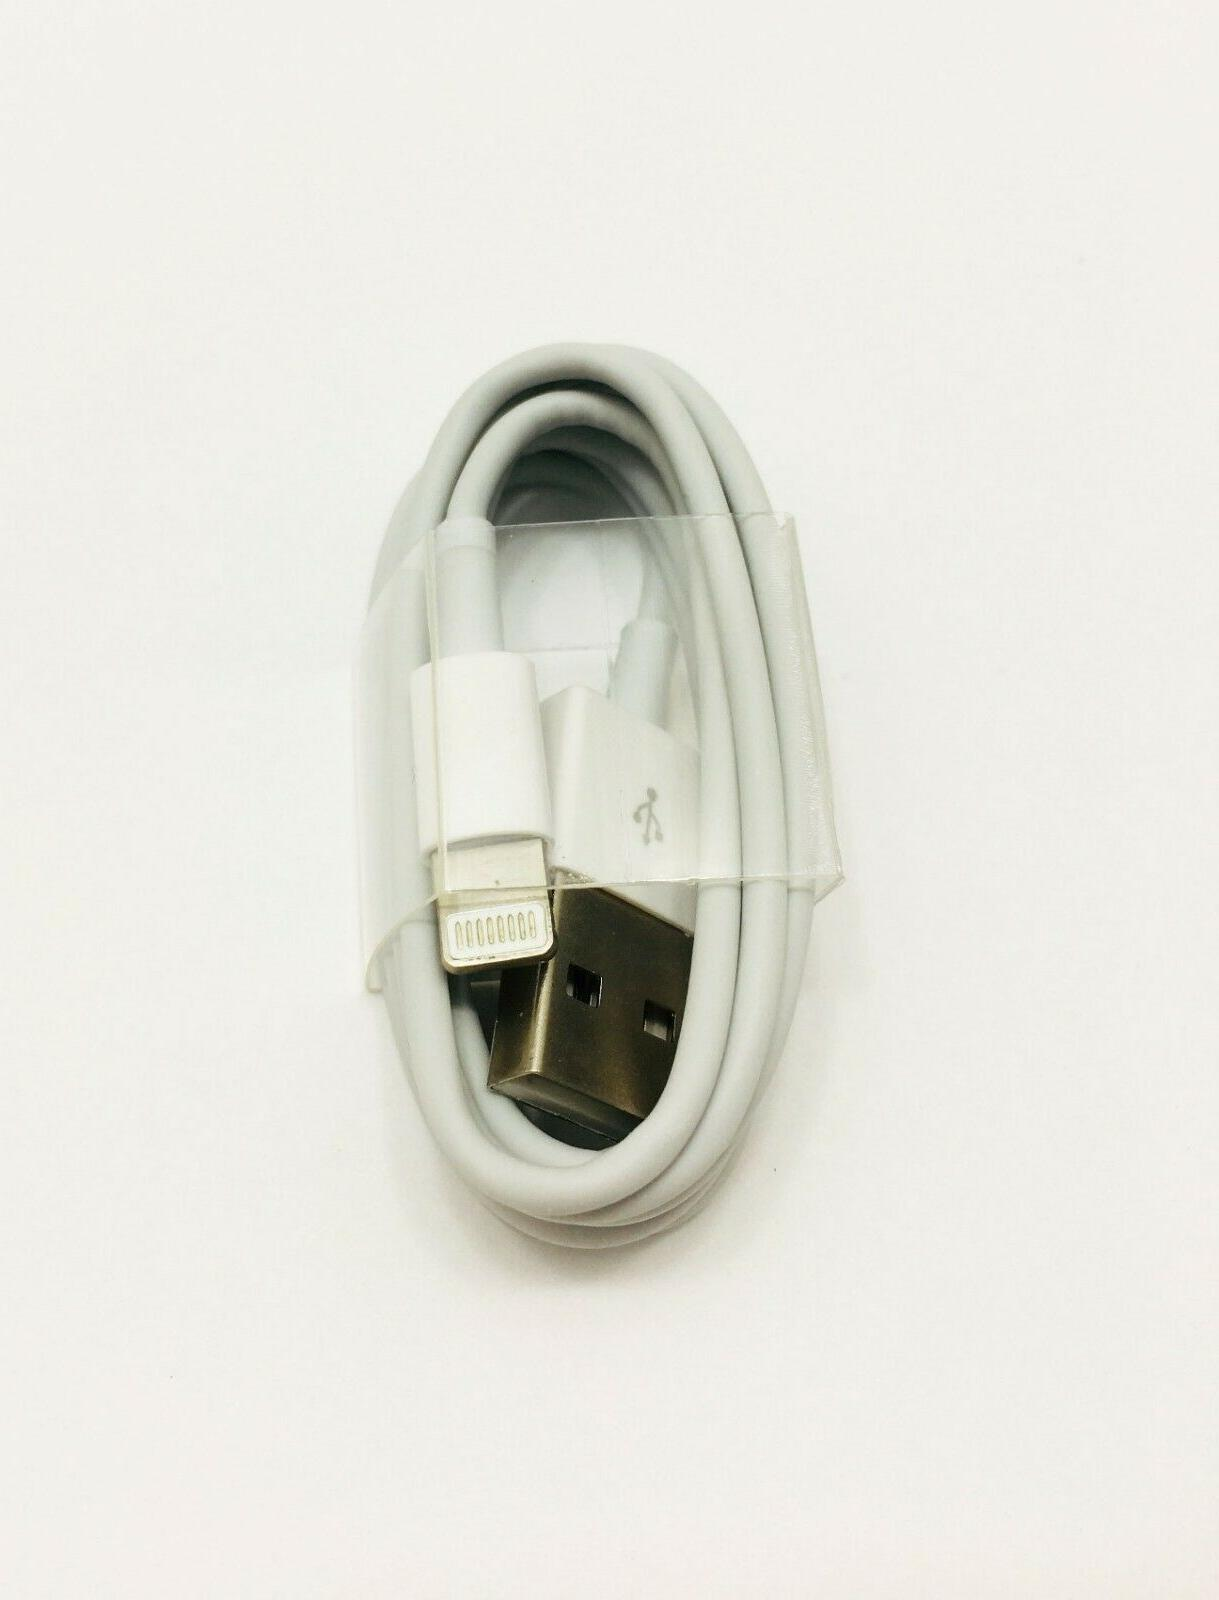 X USB Cable Wholesale Bulk